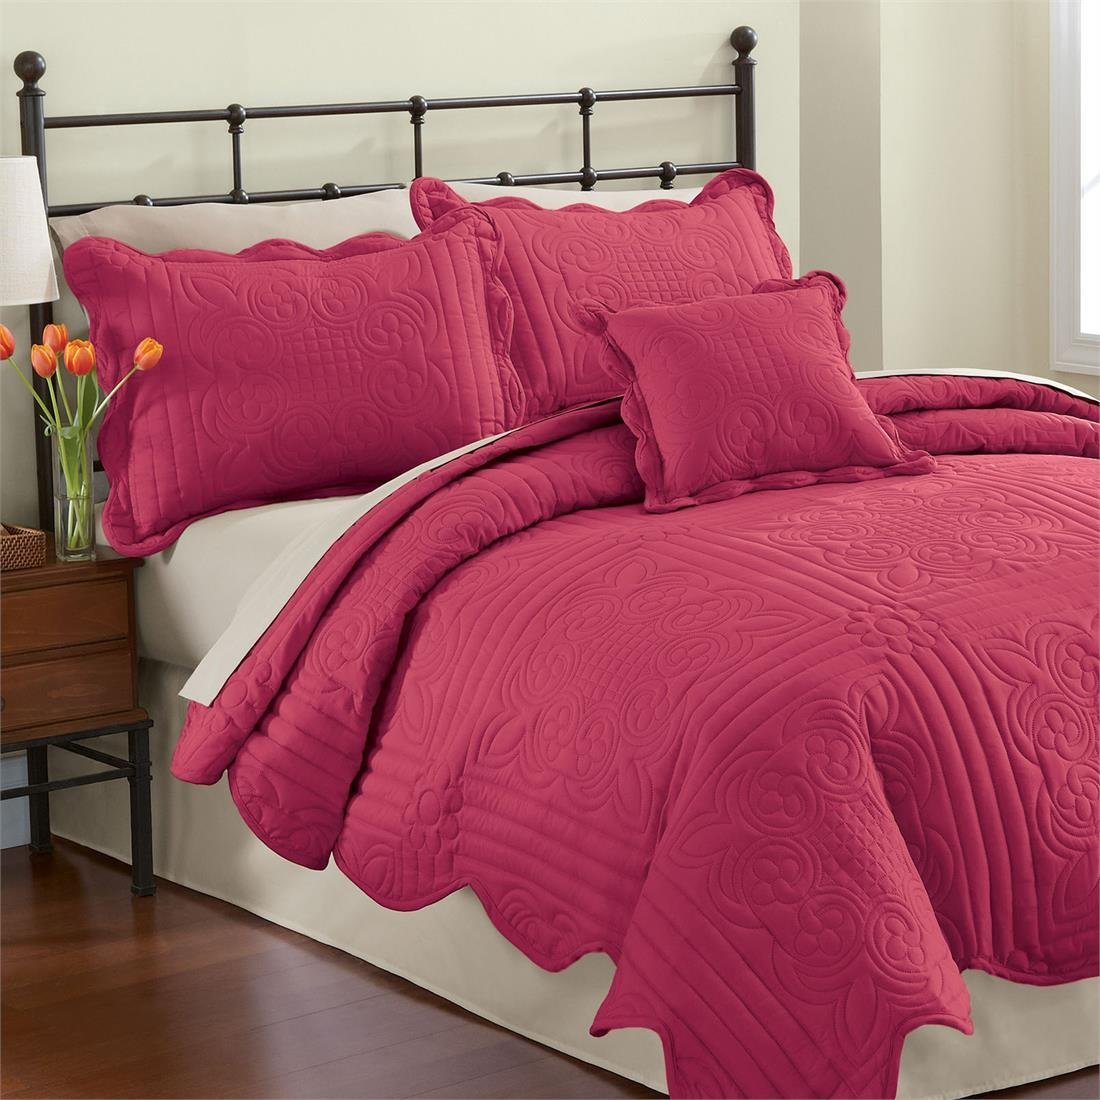 colored floral set vintage bicarri comforter rose p bedding nature style by tree natural